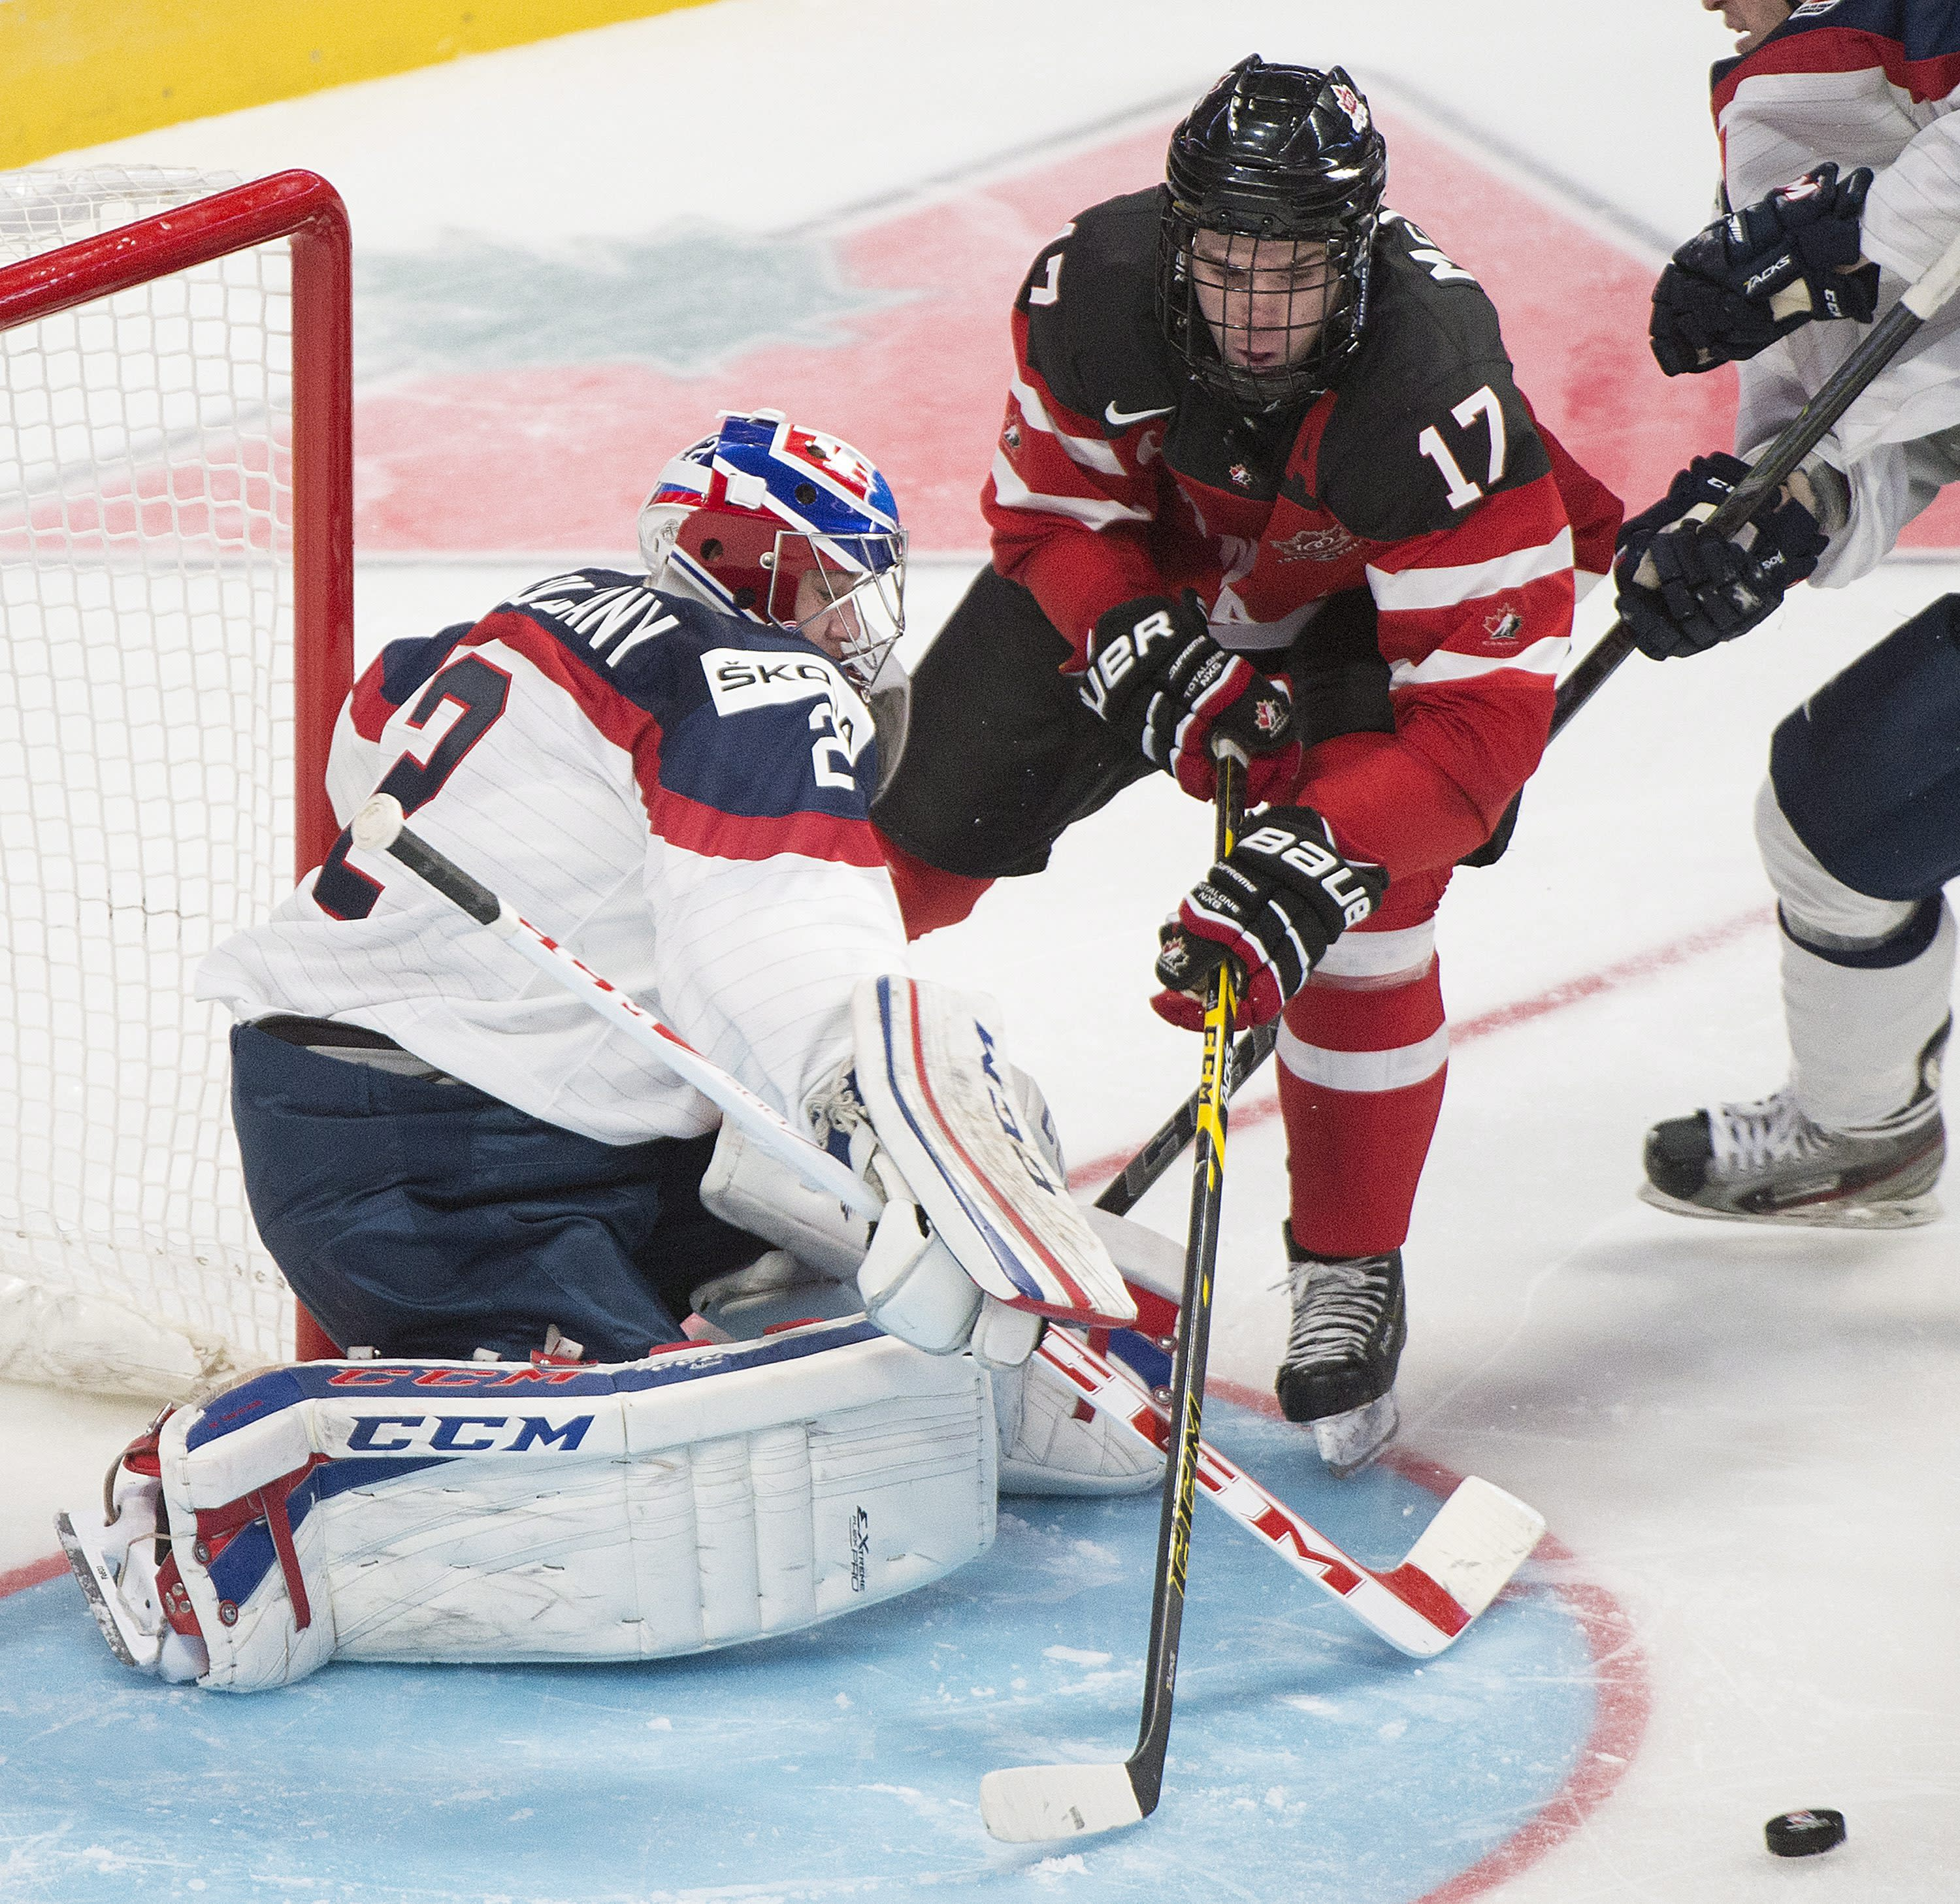 Canada beats Germany 4-0 in world junior hockey